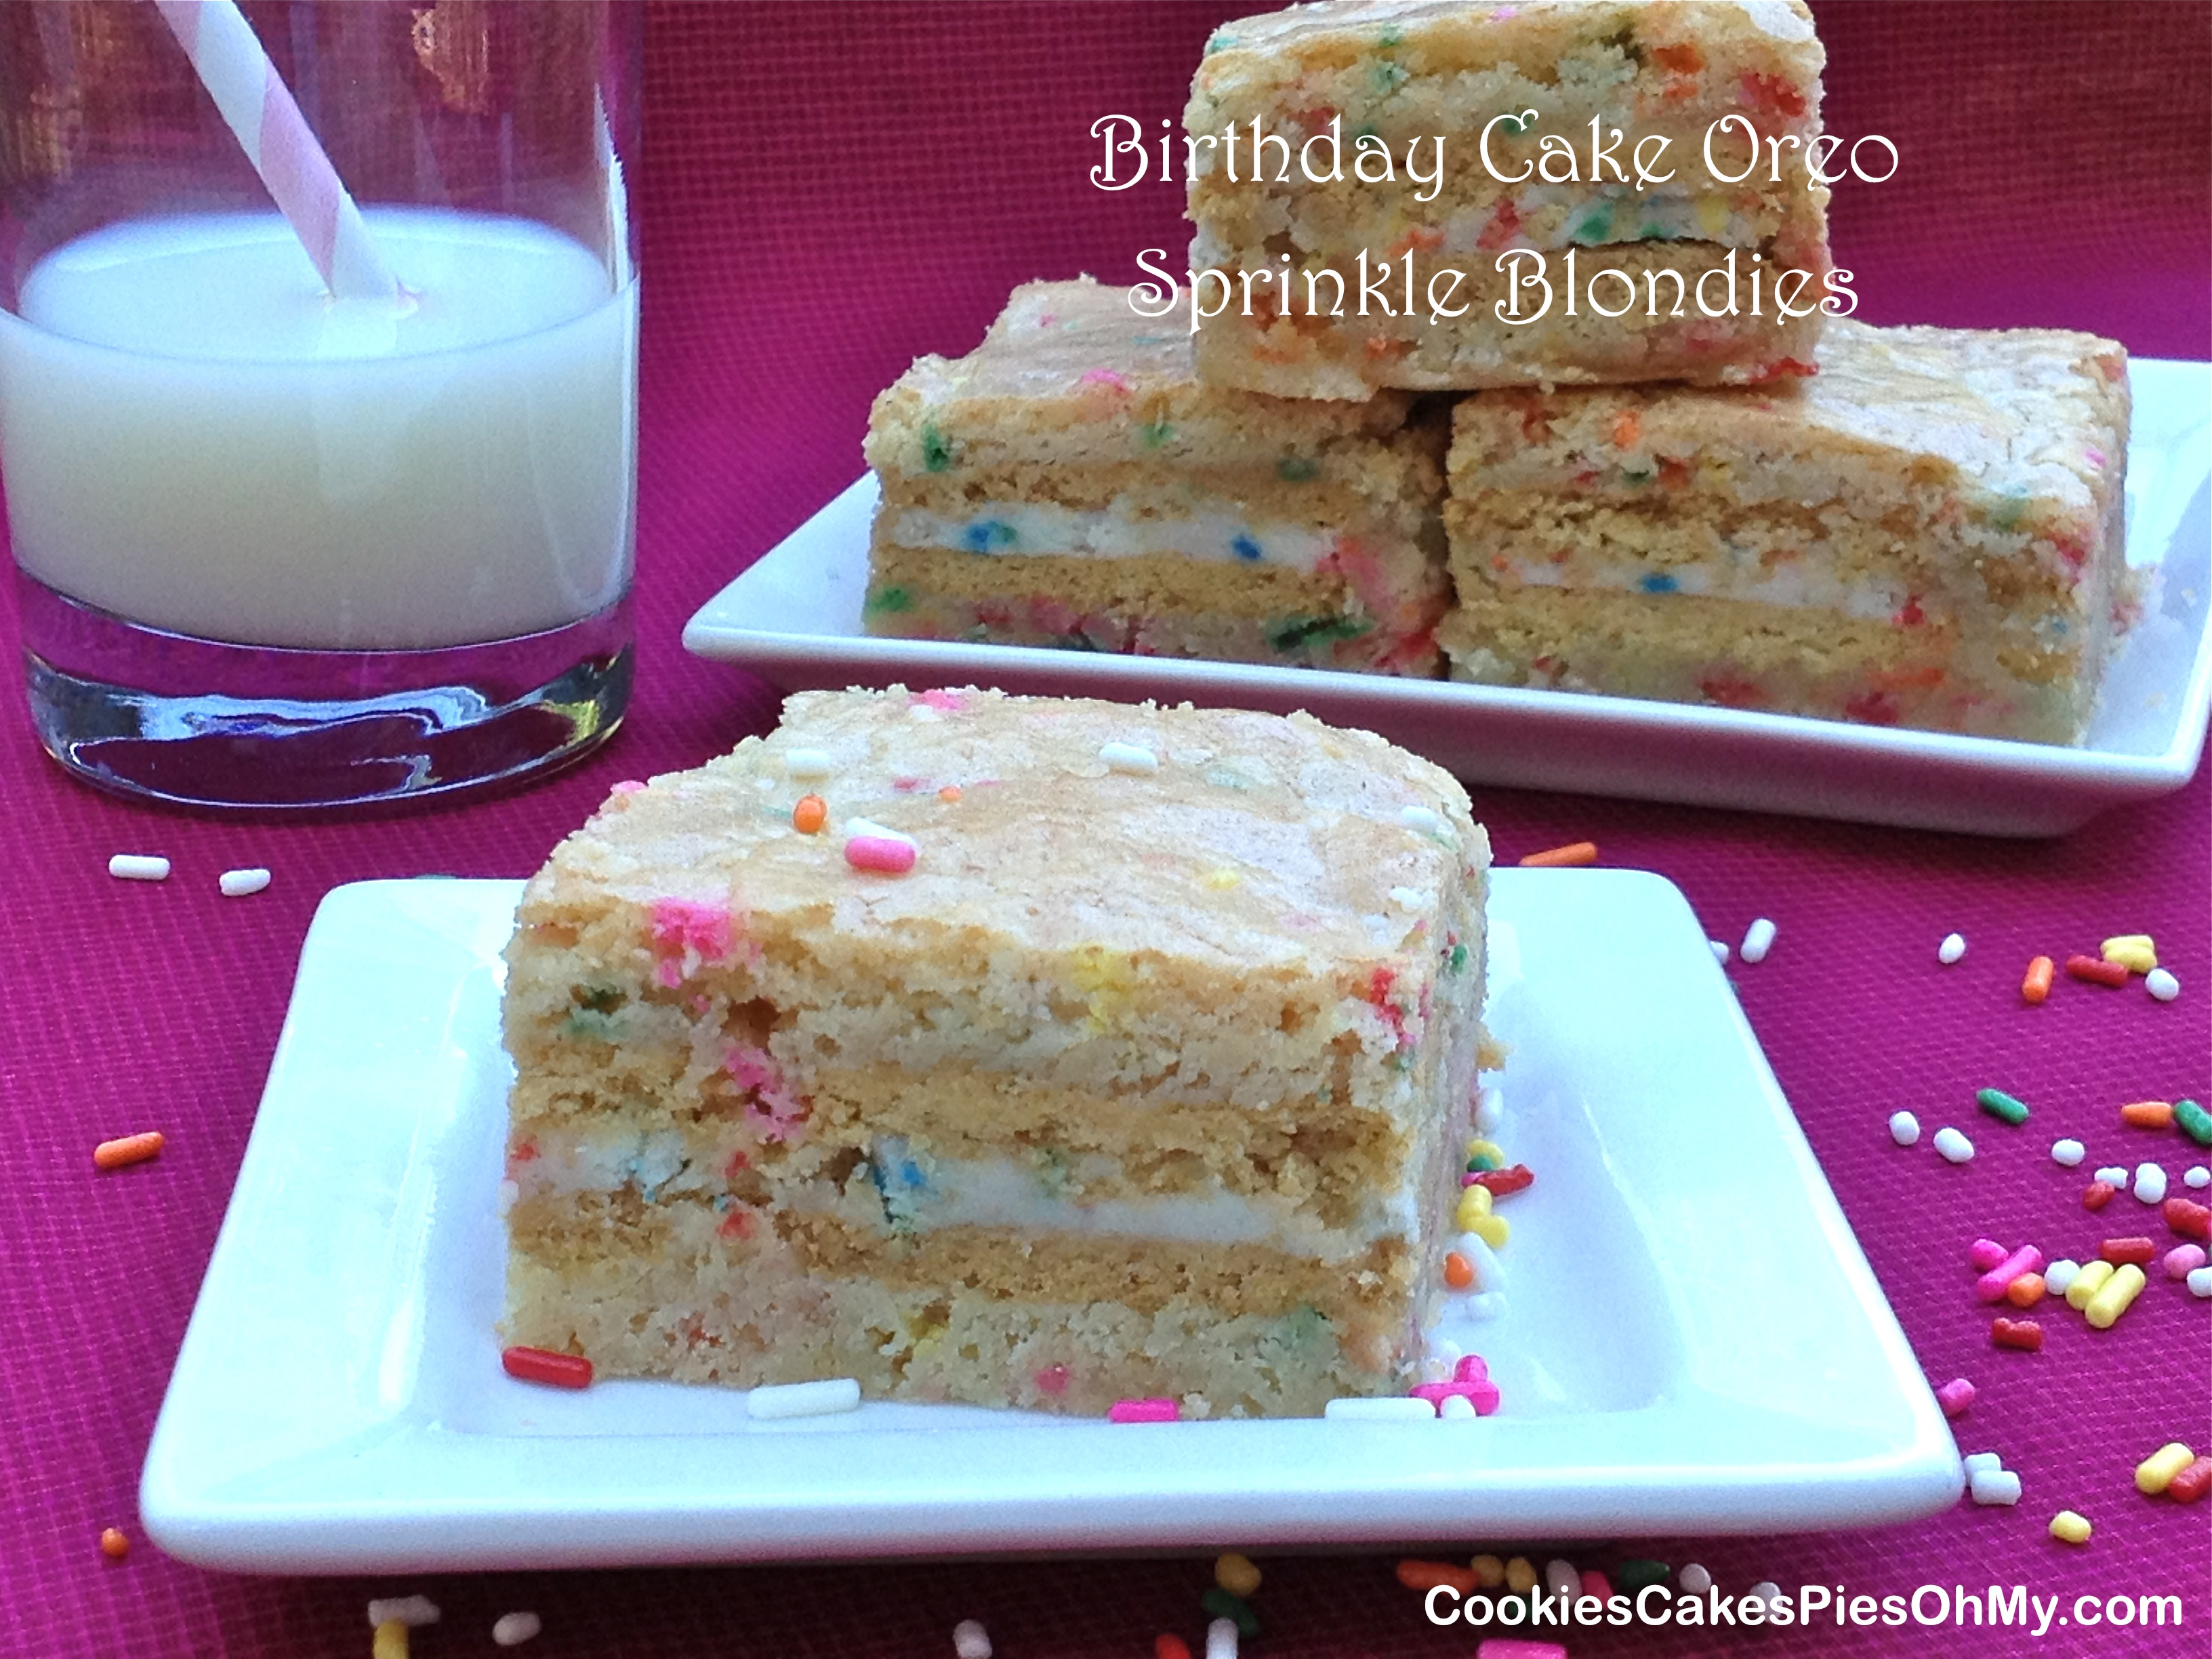 Birthday Cake Oreo Sprinkle Blondies CookiesCakesPiesOhMy